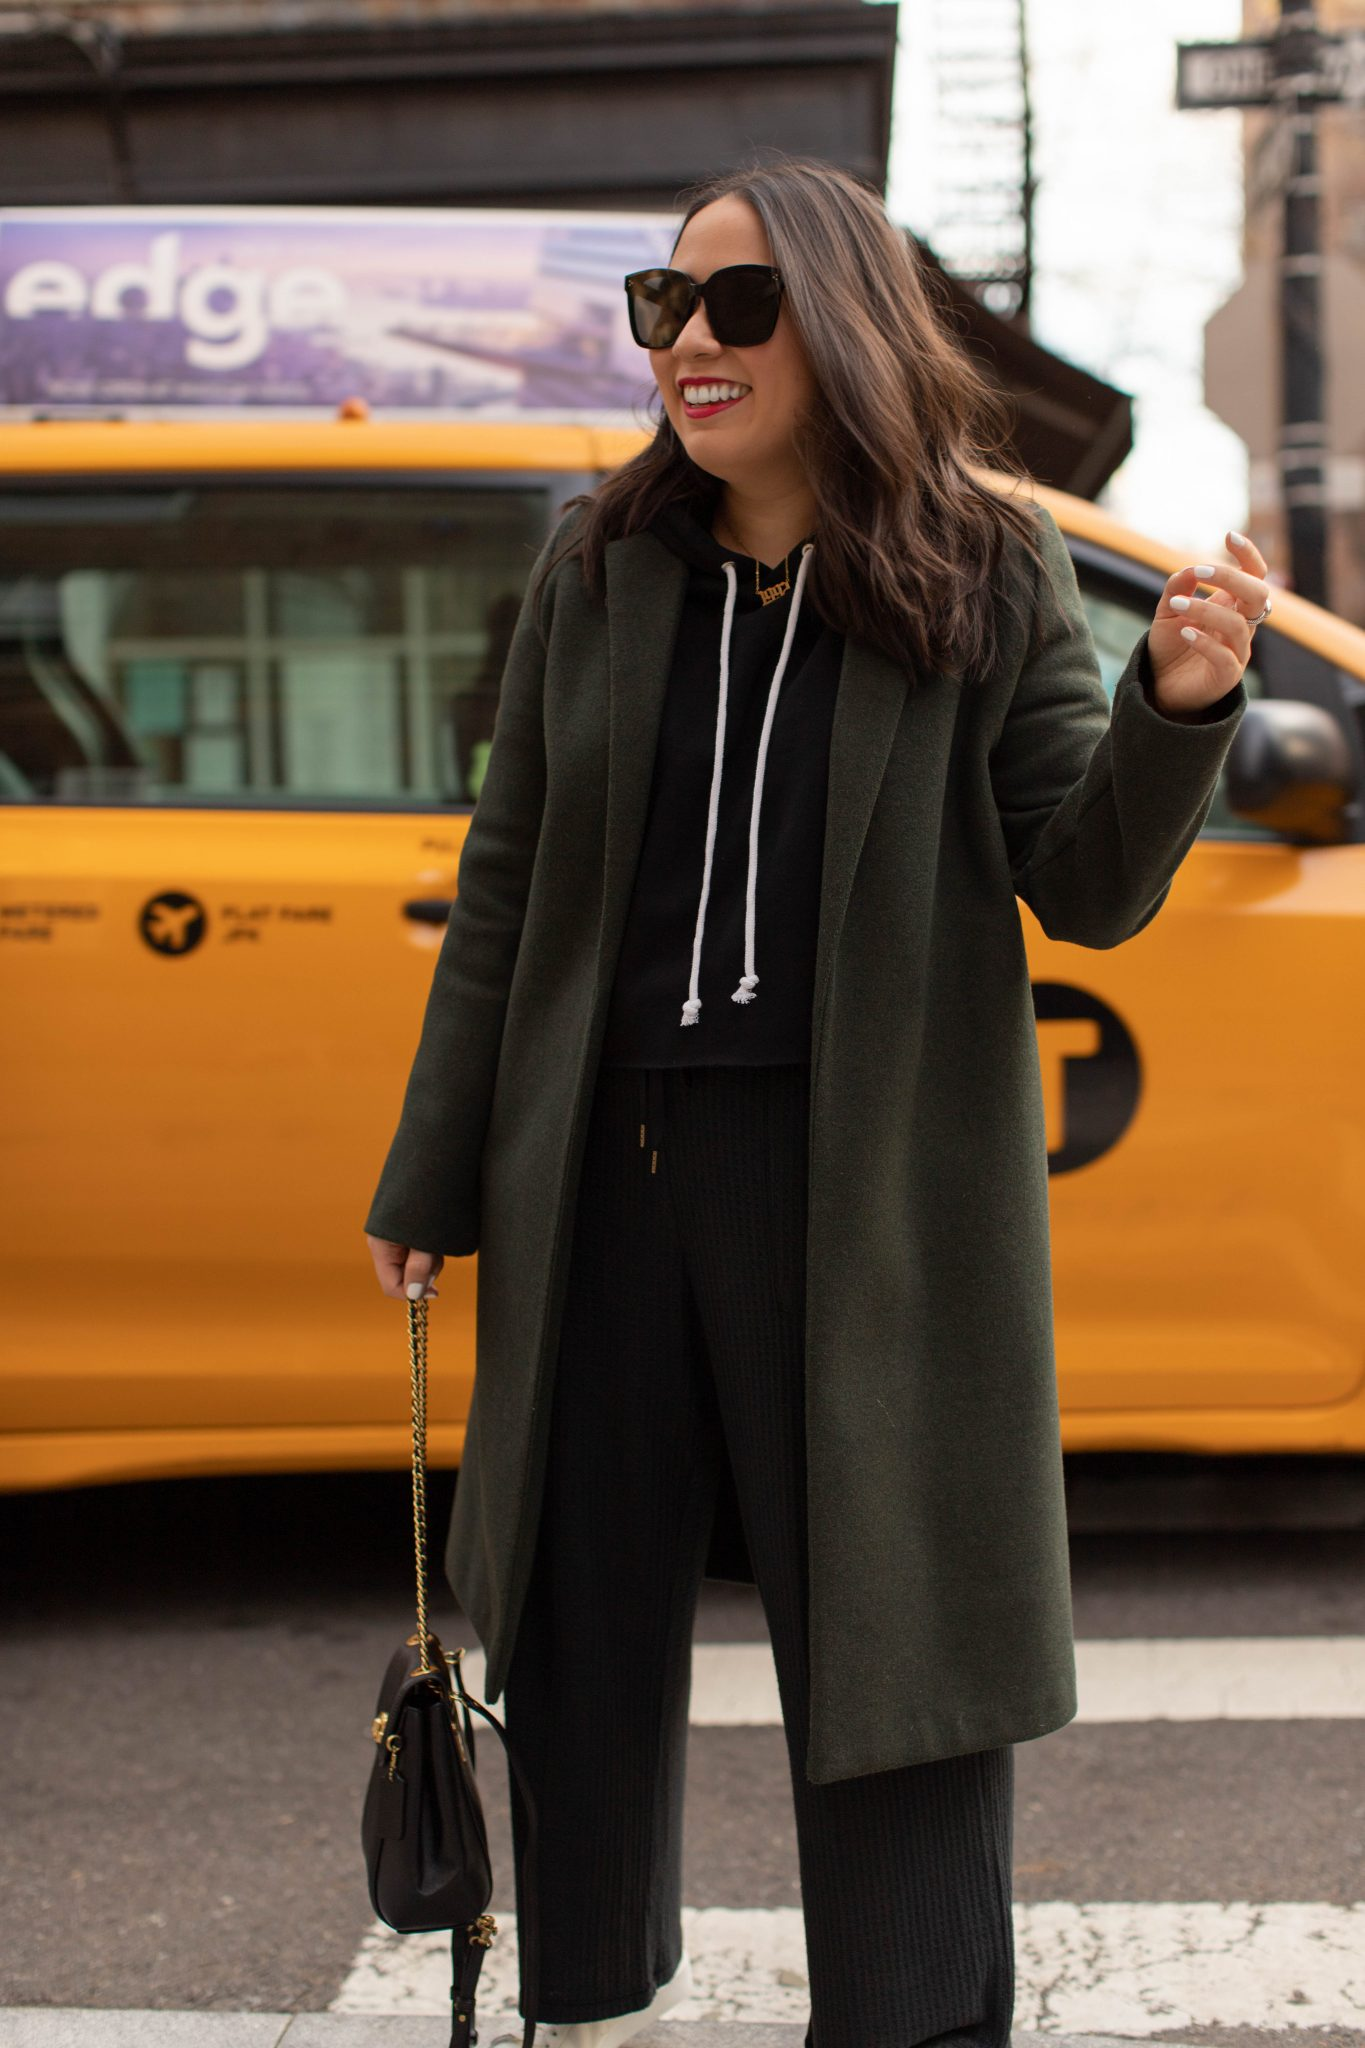 Popular New York City life and style blog : Basically A Mess